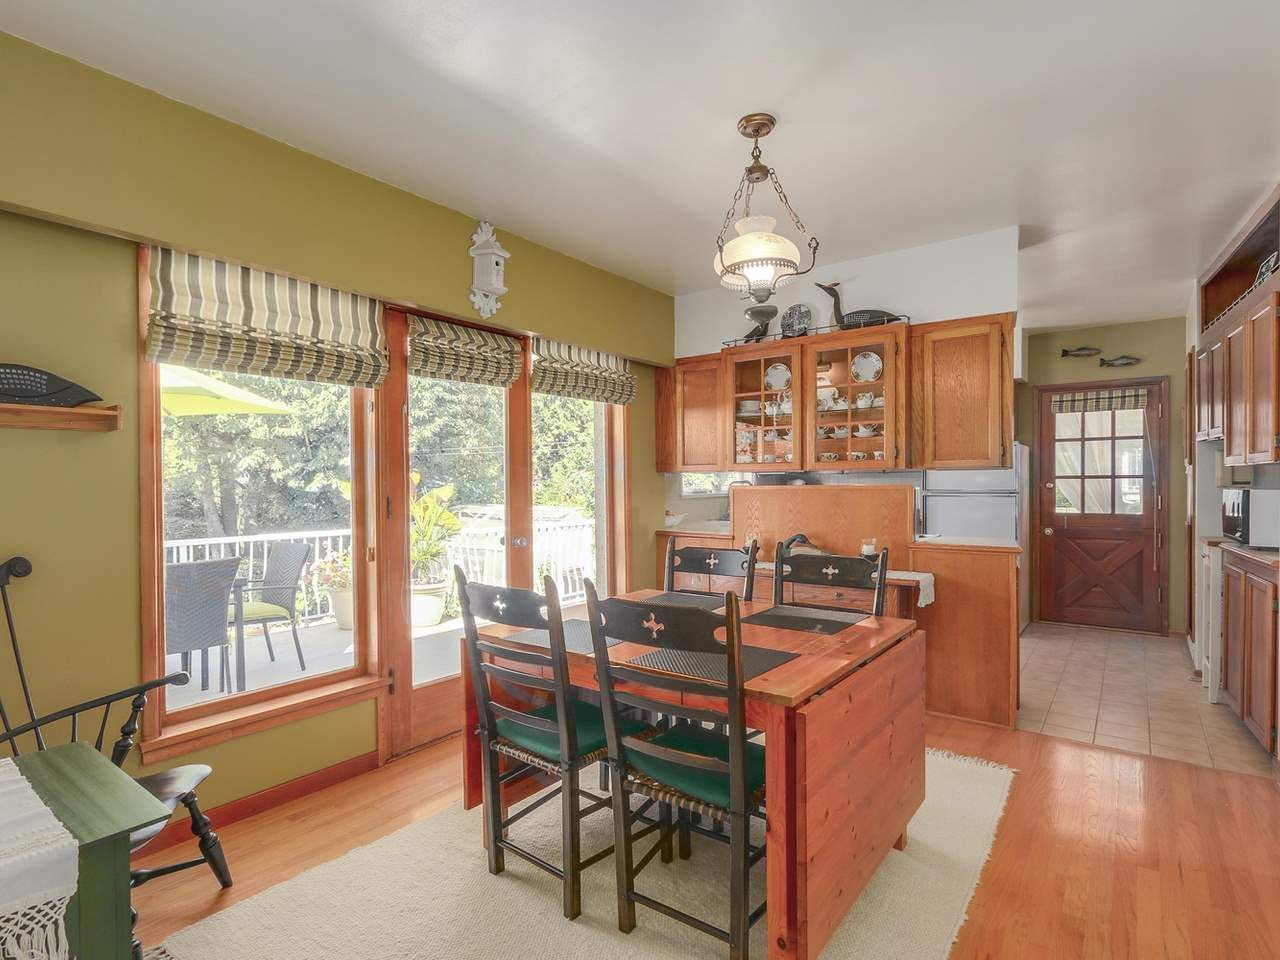 Photo 6: Photos: 587 HARRISON Avenue in Coquitlam: Coquitlam West House for sale : MLS®# R2097877